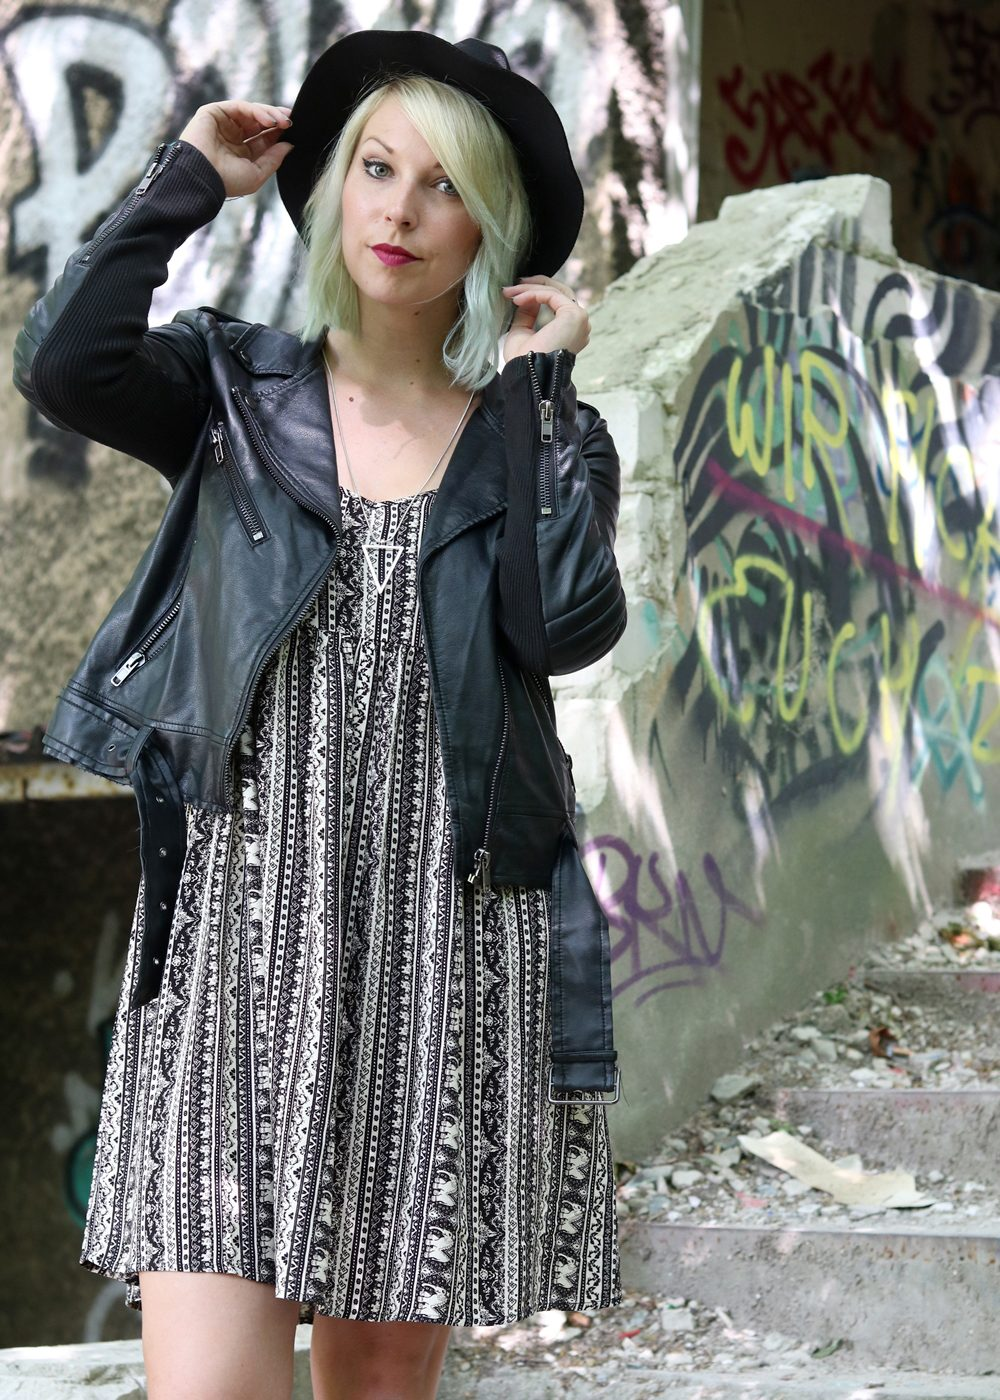 Fashinblogger Outfit Lost Places Berlin Lederjacke Ethnokleid Bikerboots Hut (16)